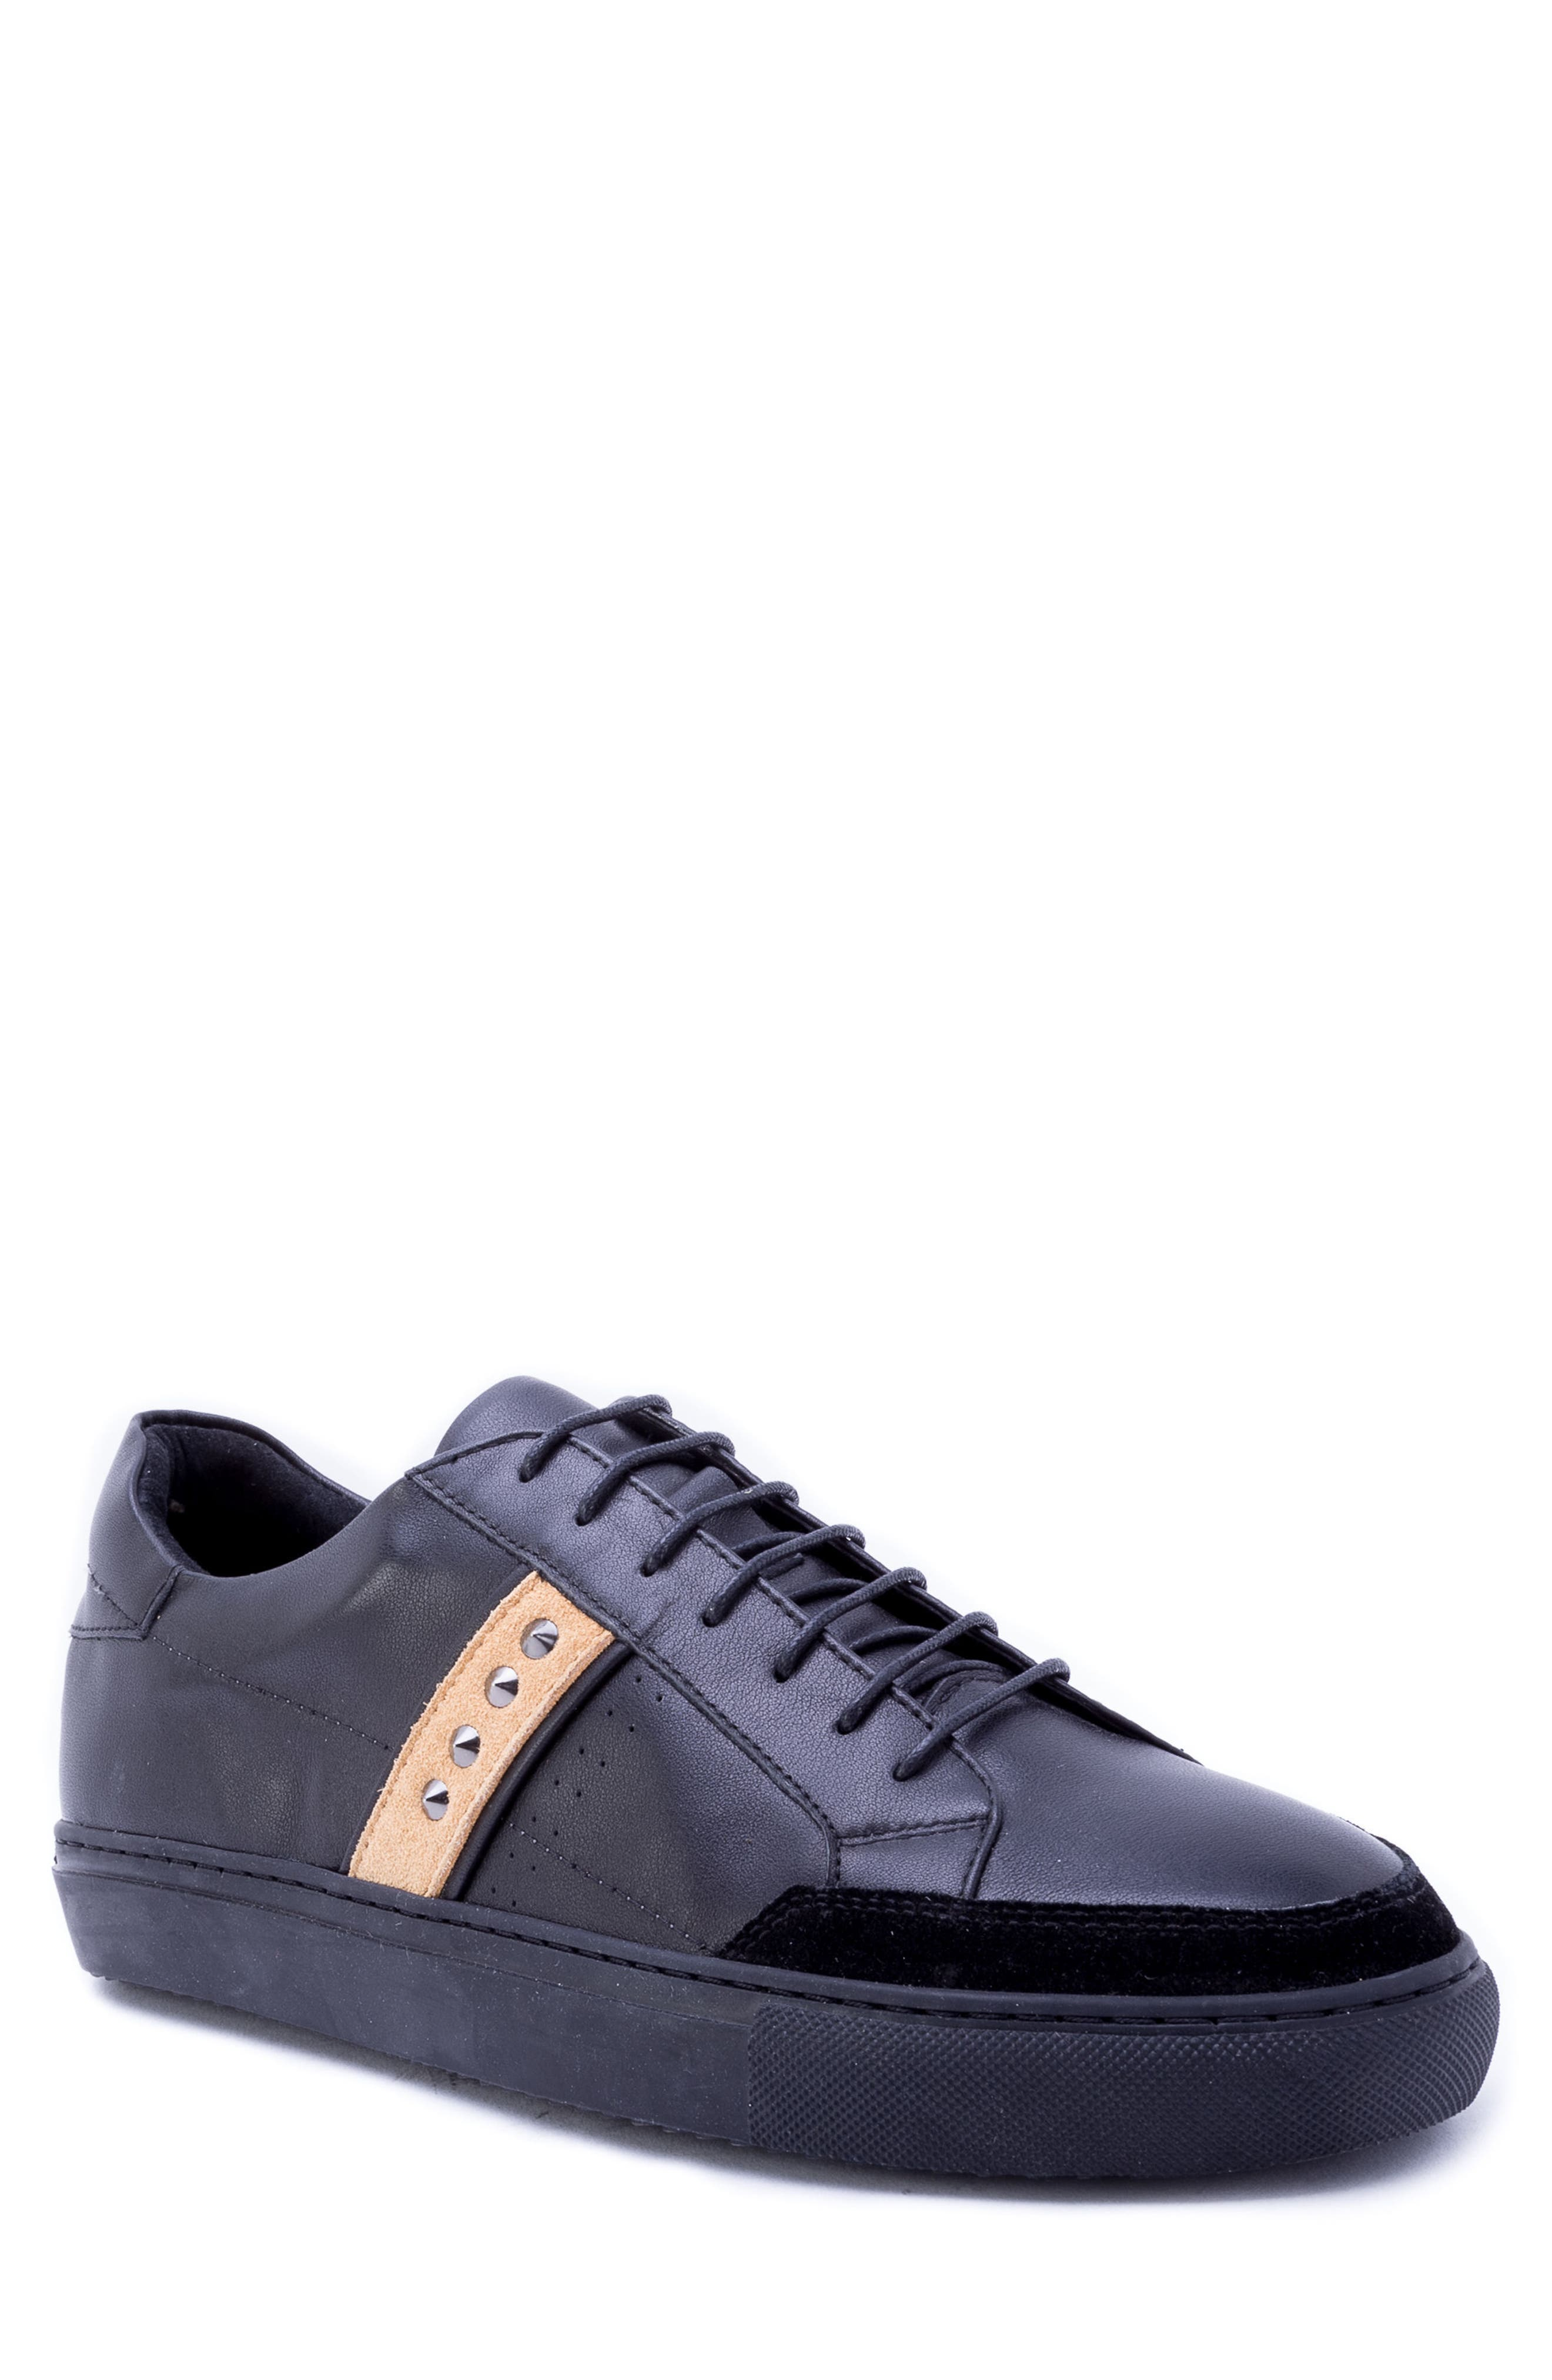 Badgley Mischka Connery Sneaker,                         Main,                         color, BLACK LEATHER